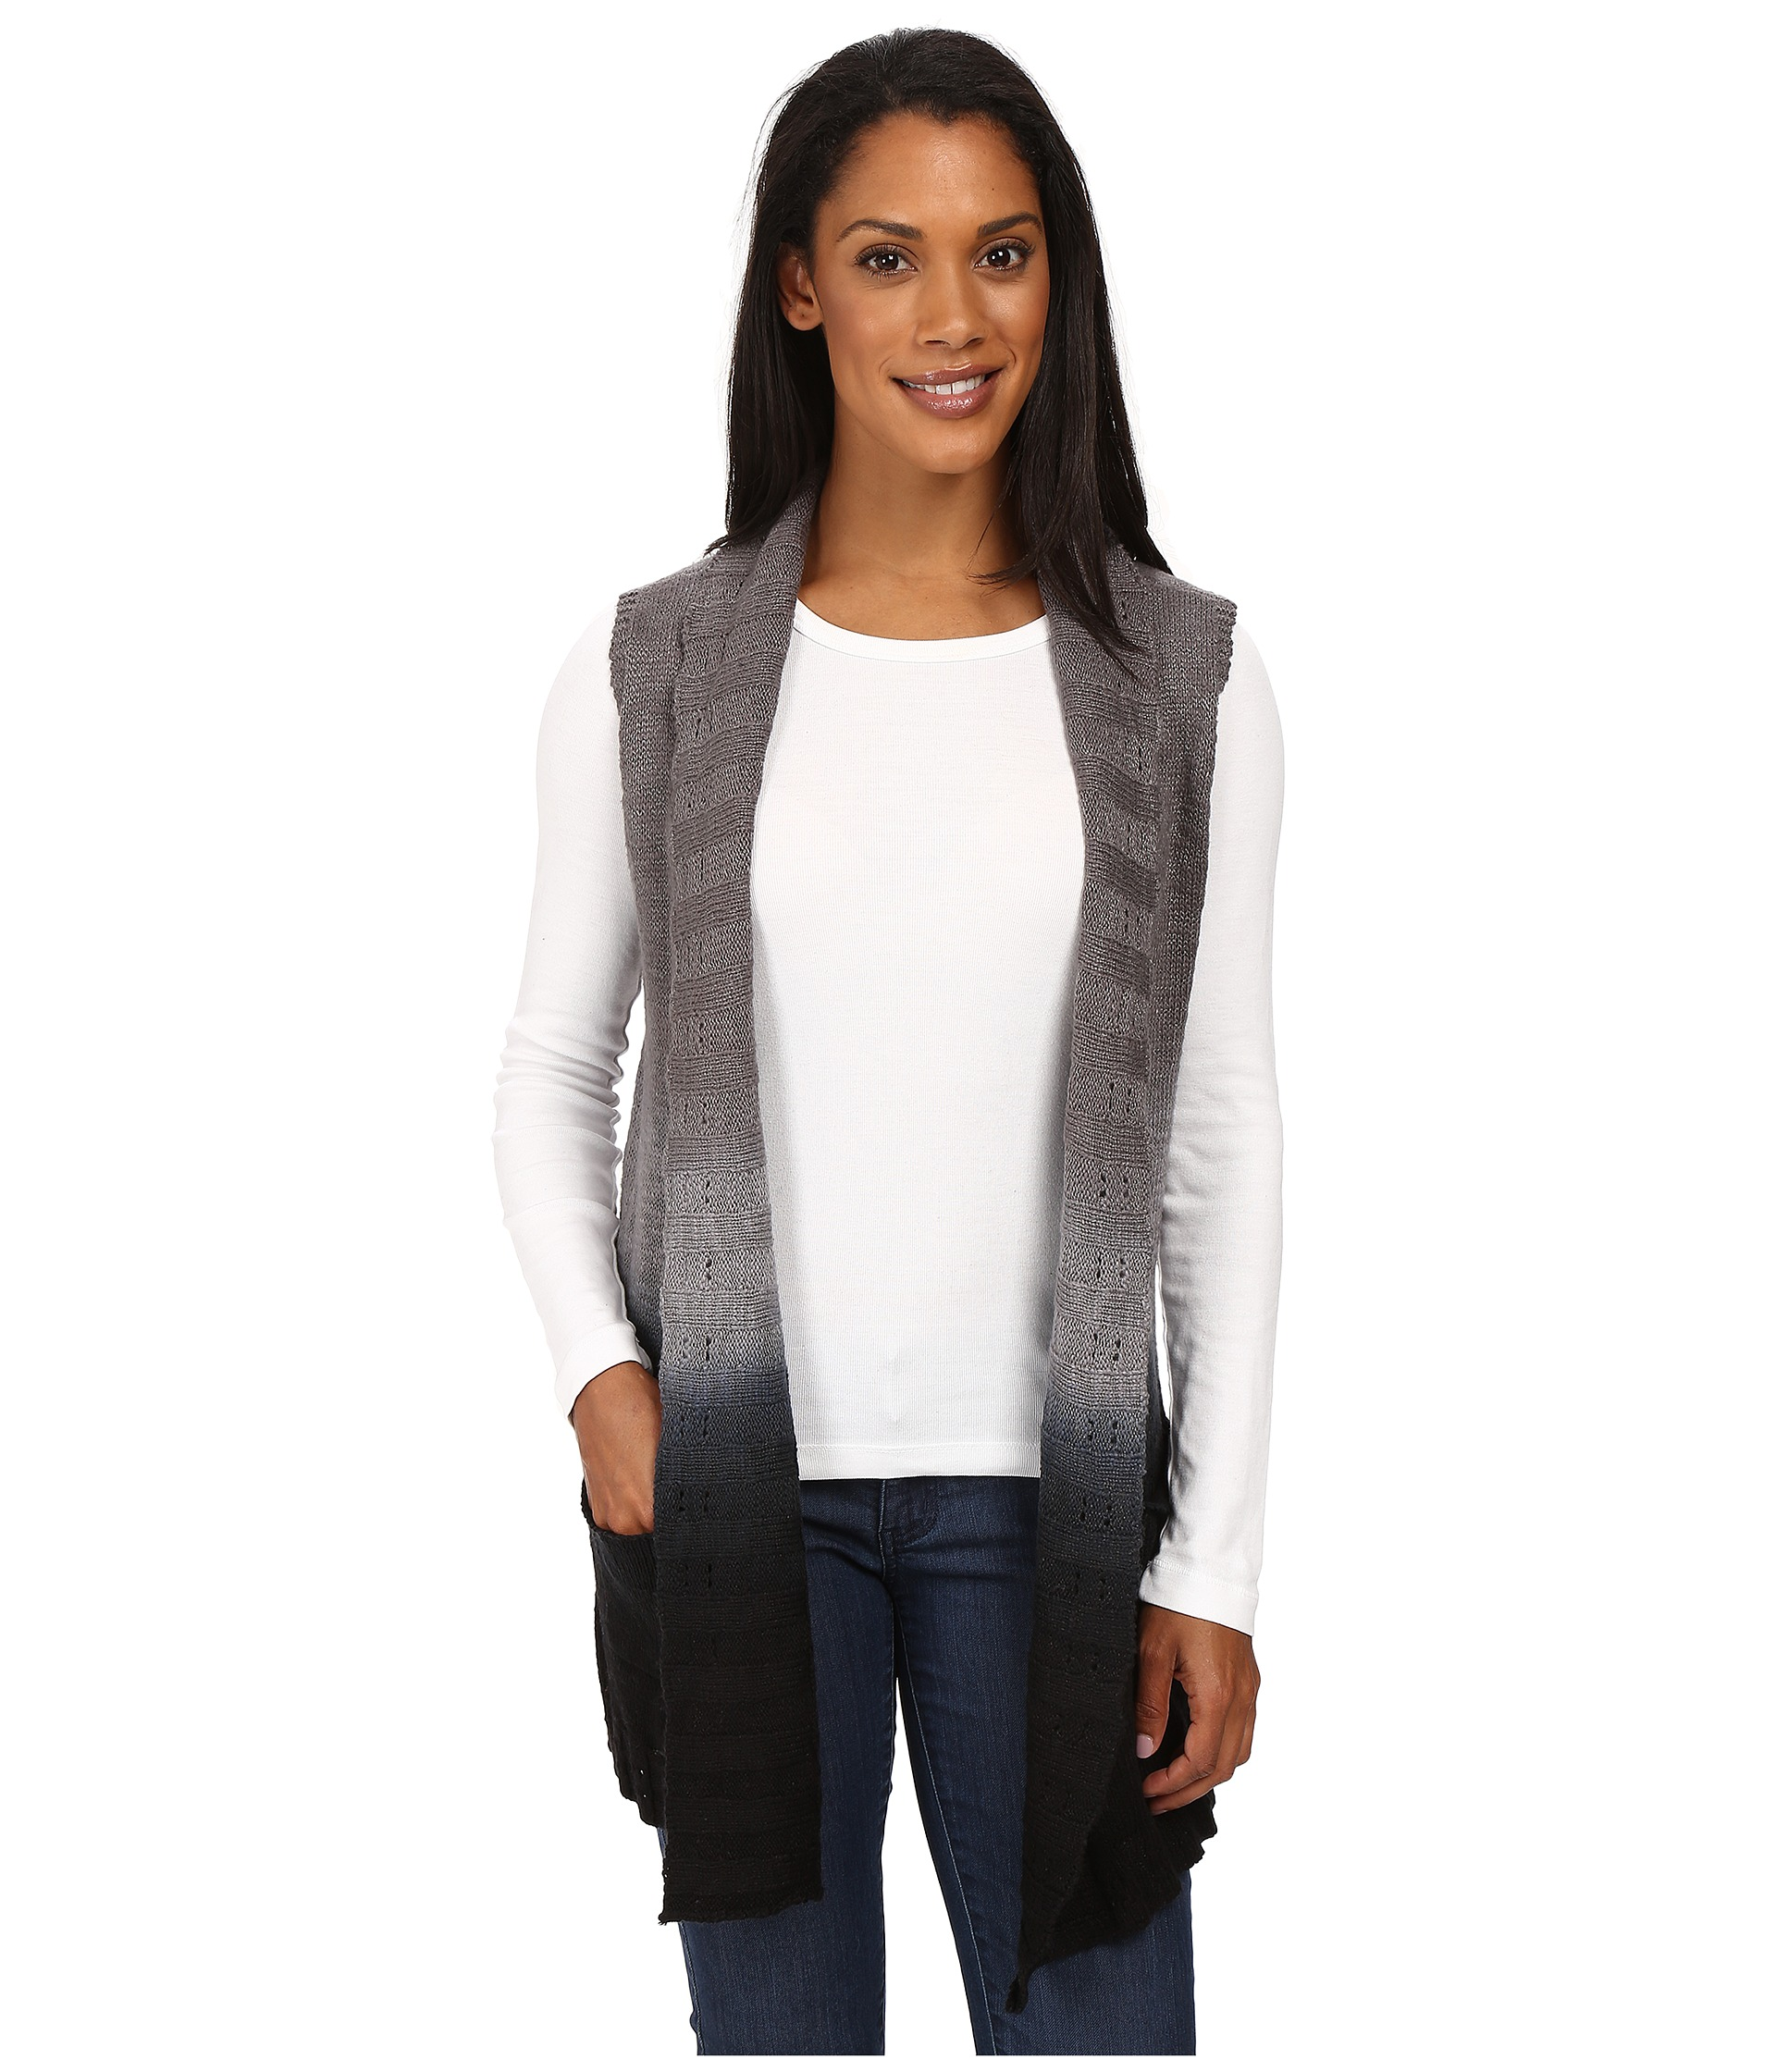 8abb196d7a3 Aventura Clothing Kennedy Sweater Black Smoked Pearl - Zappos.com ...